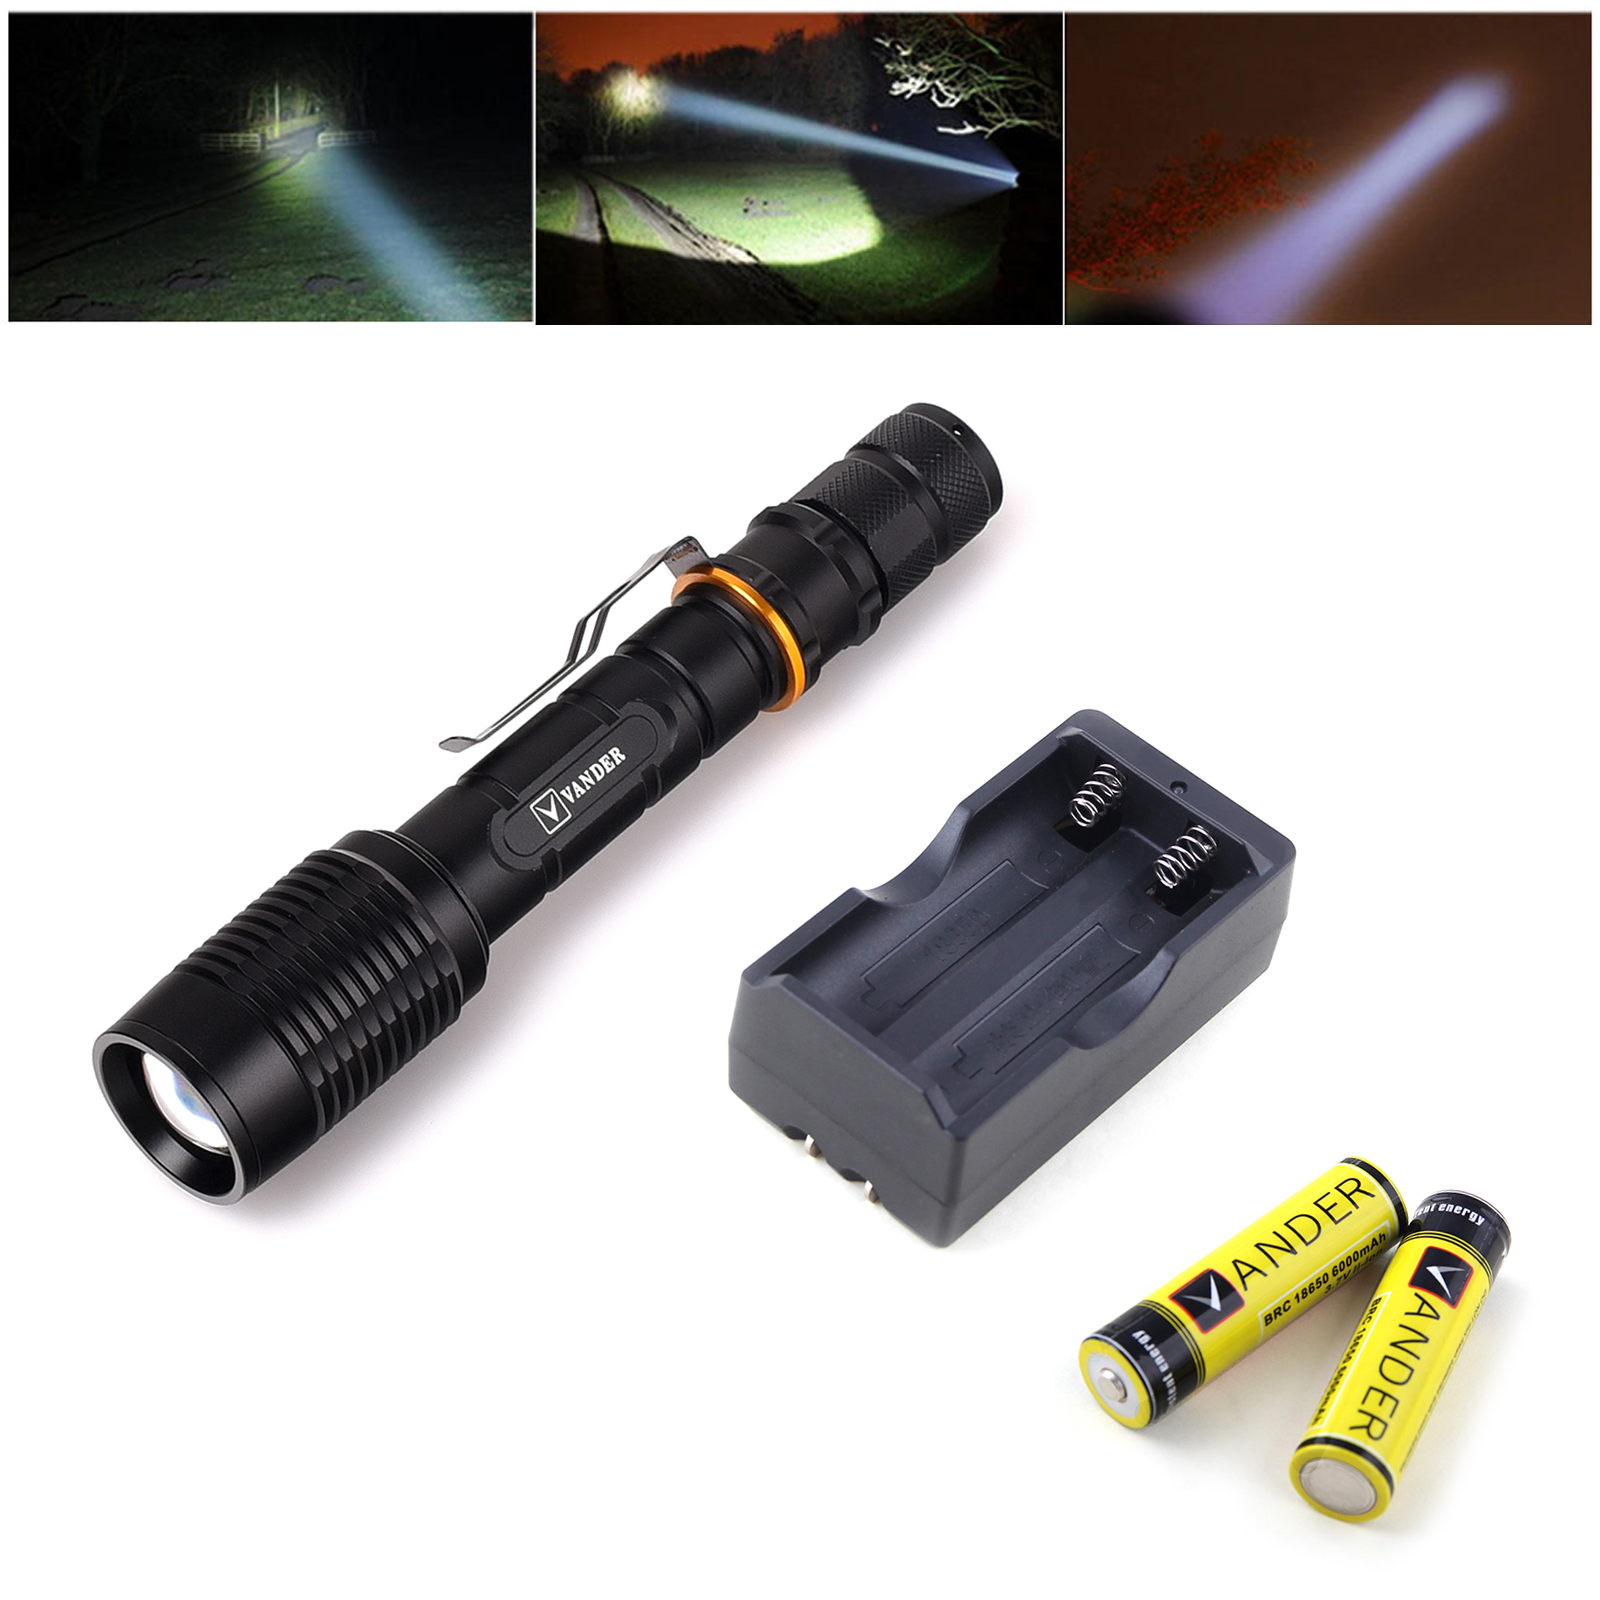 VANDERLIFE Flashlight CREE 5 Modes 2000LM XM-L T6 Zoomable Focus 18650 LED Flashlight Torch + Batteries + Charger